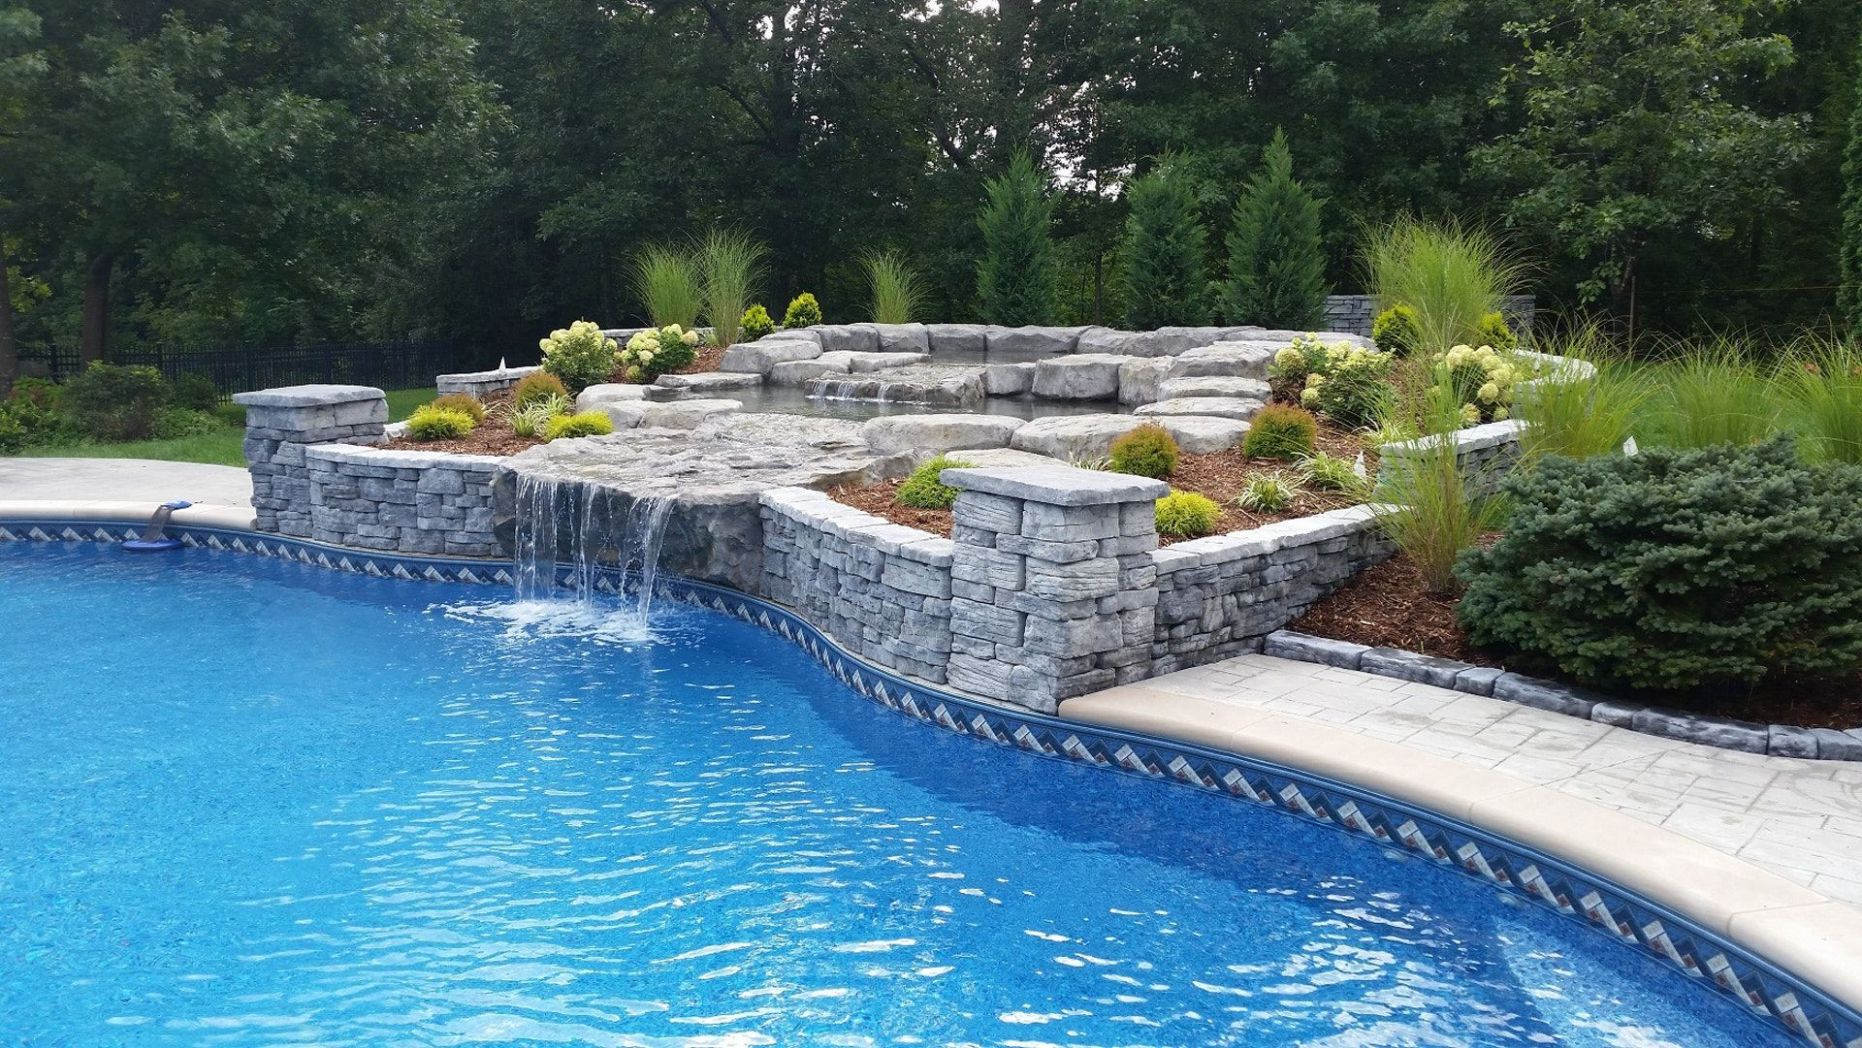 Top 8 Pool Landscaping Ideas | Rosetta Hardscapes | Pool ..